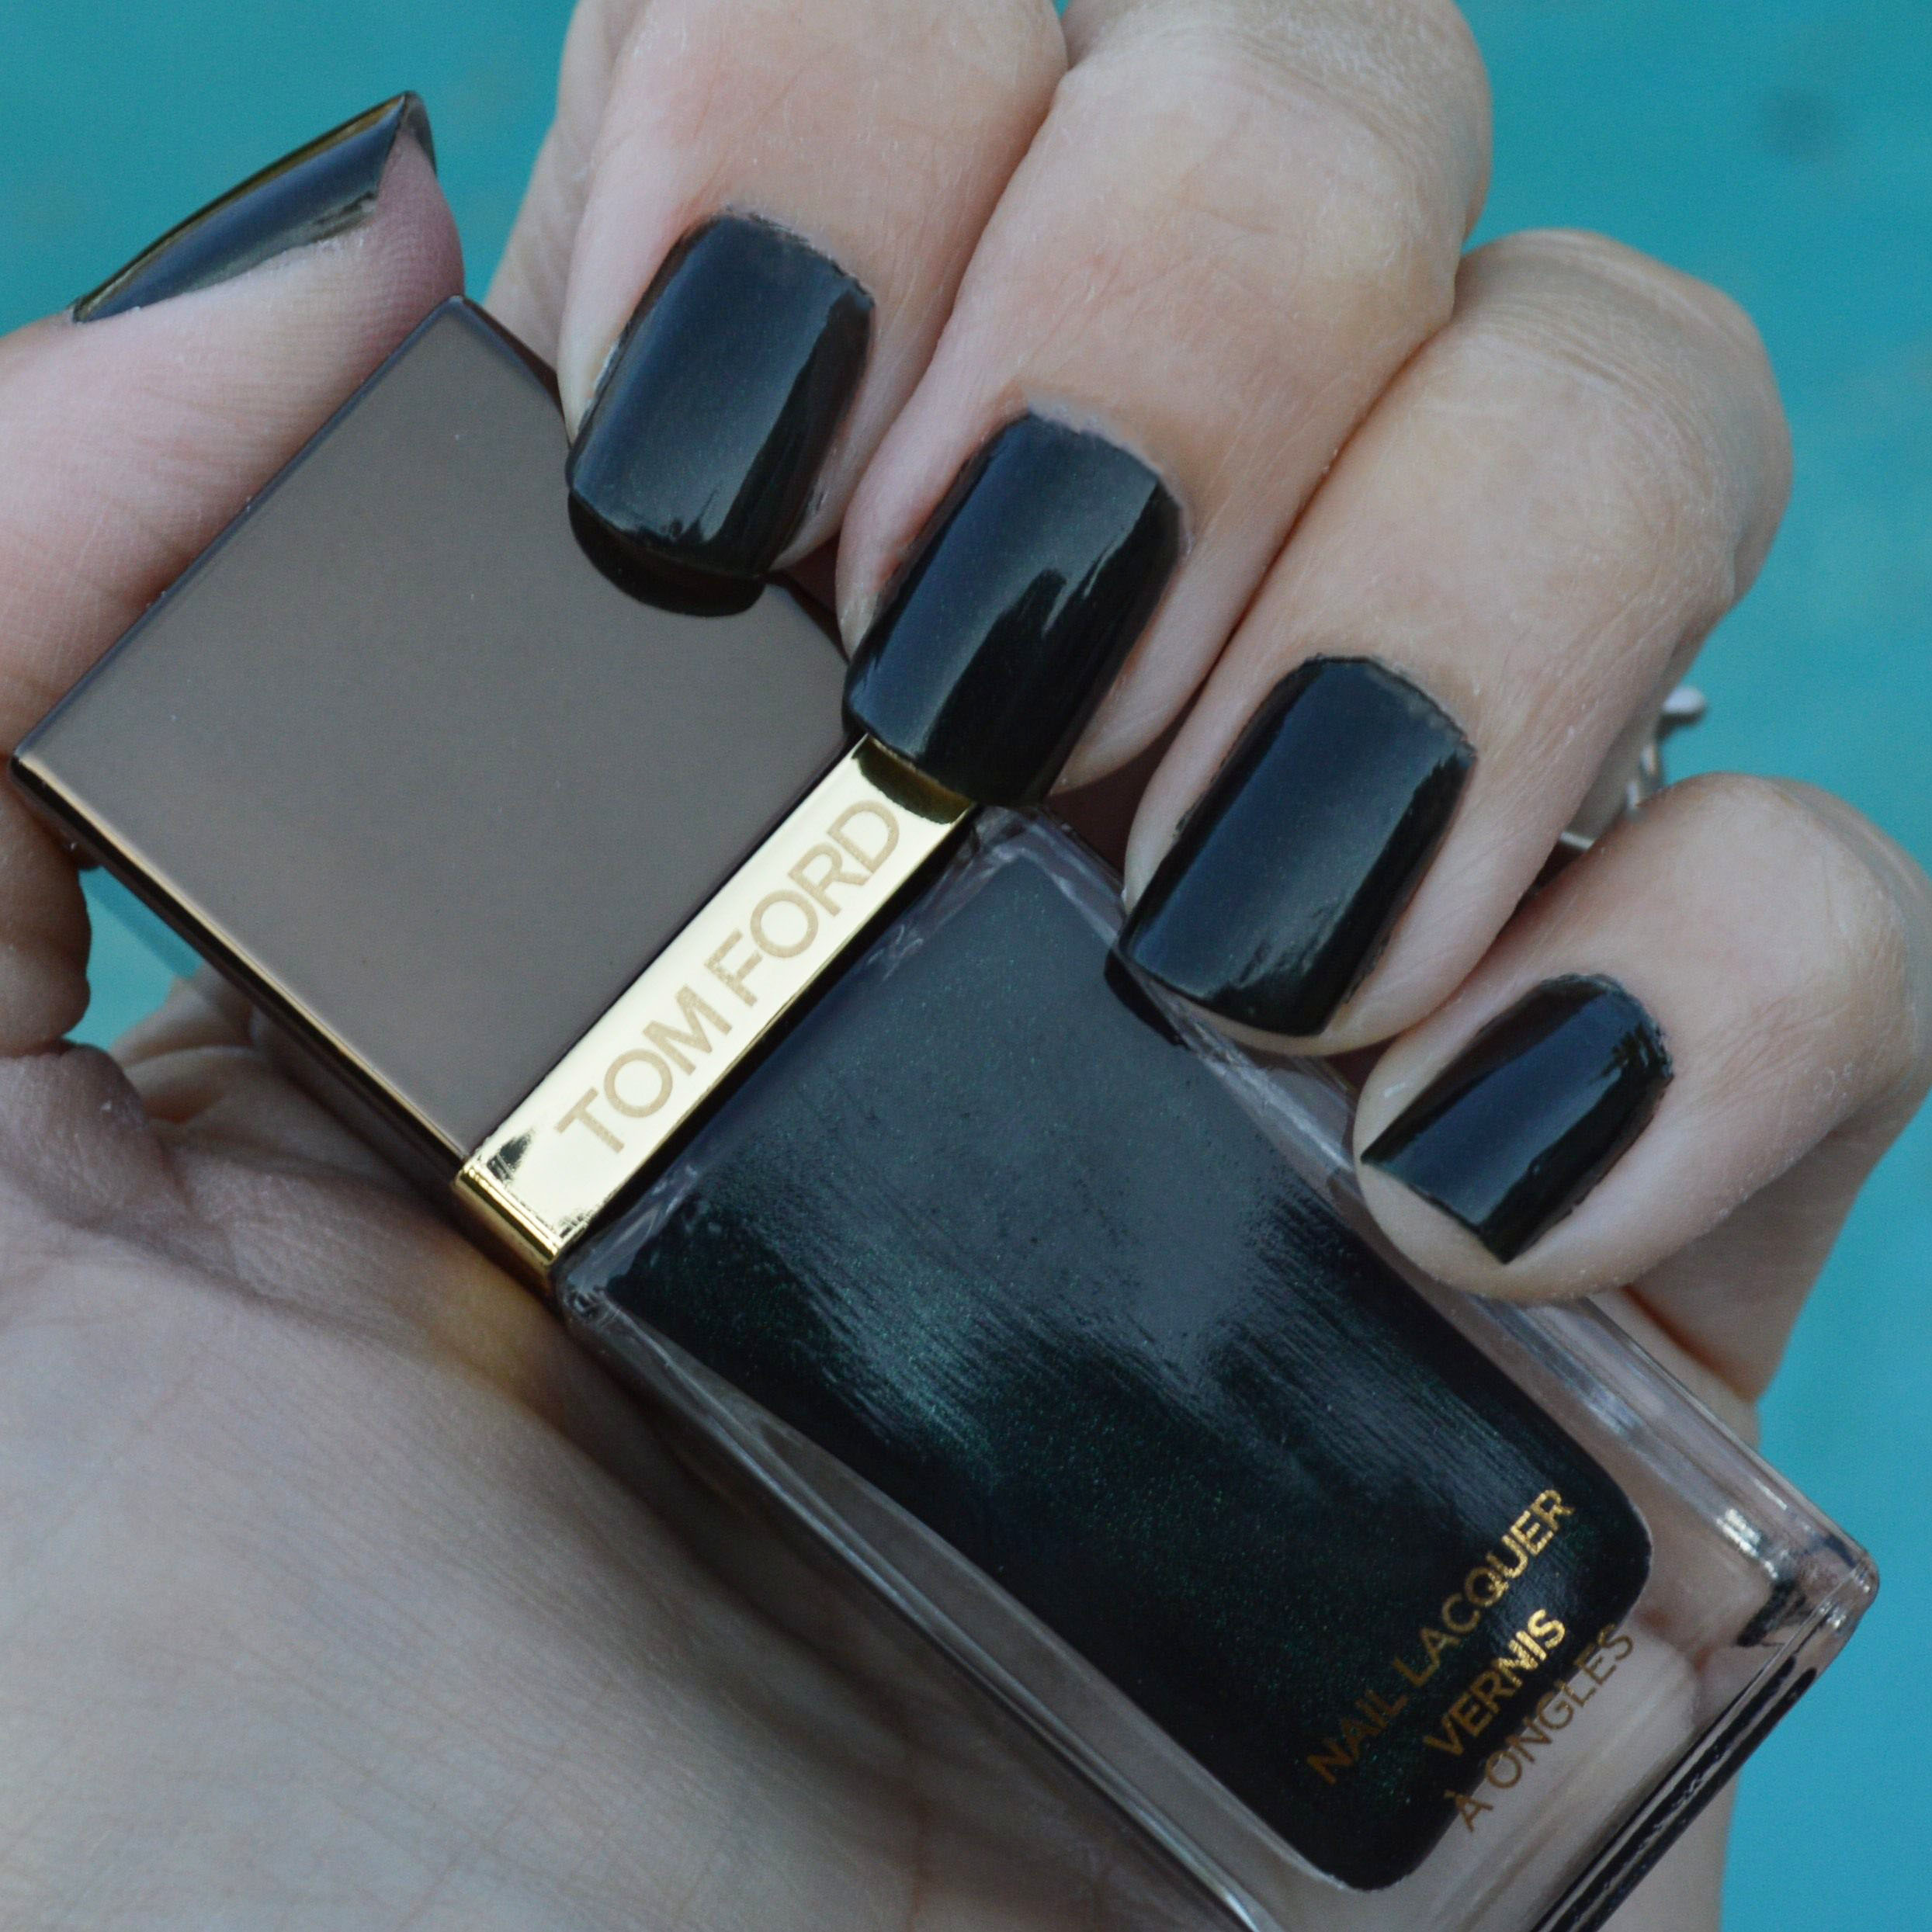 Tom Ford Black Jade nail polish for spring 2015 review | Bay Area ...